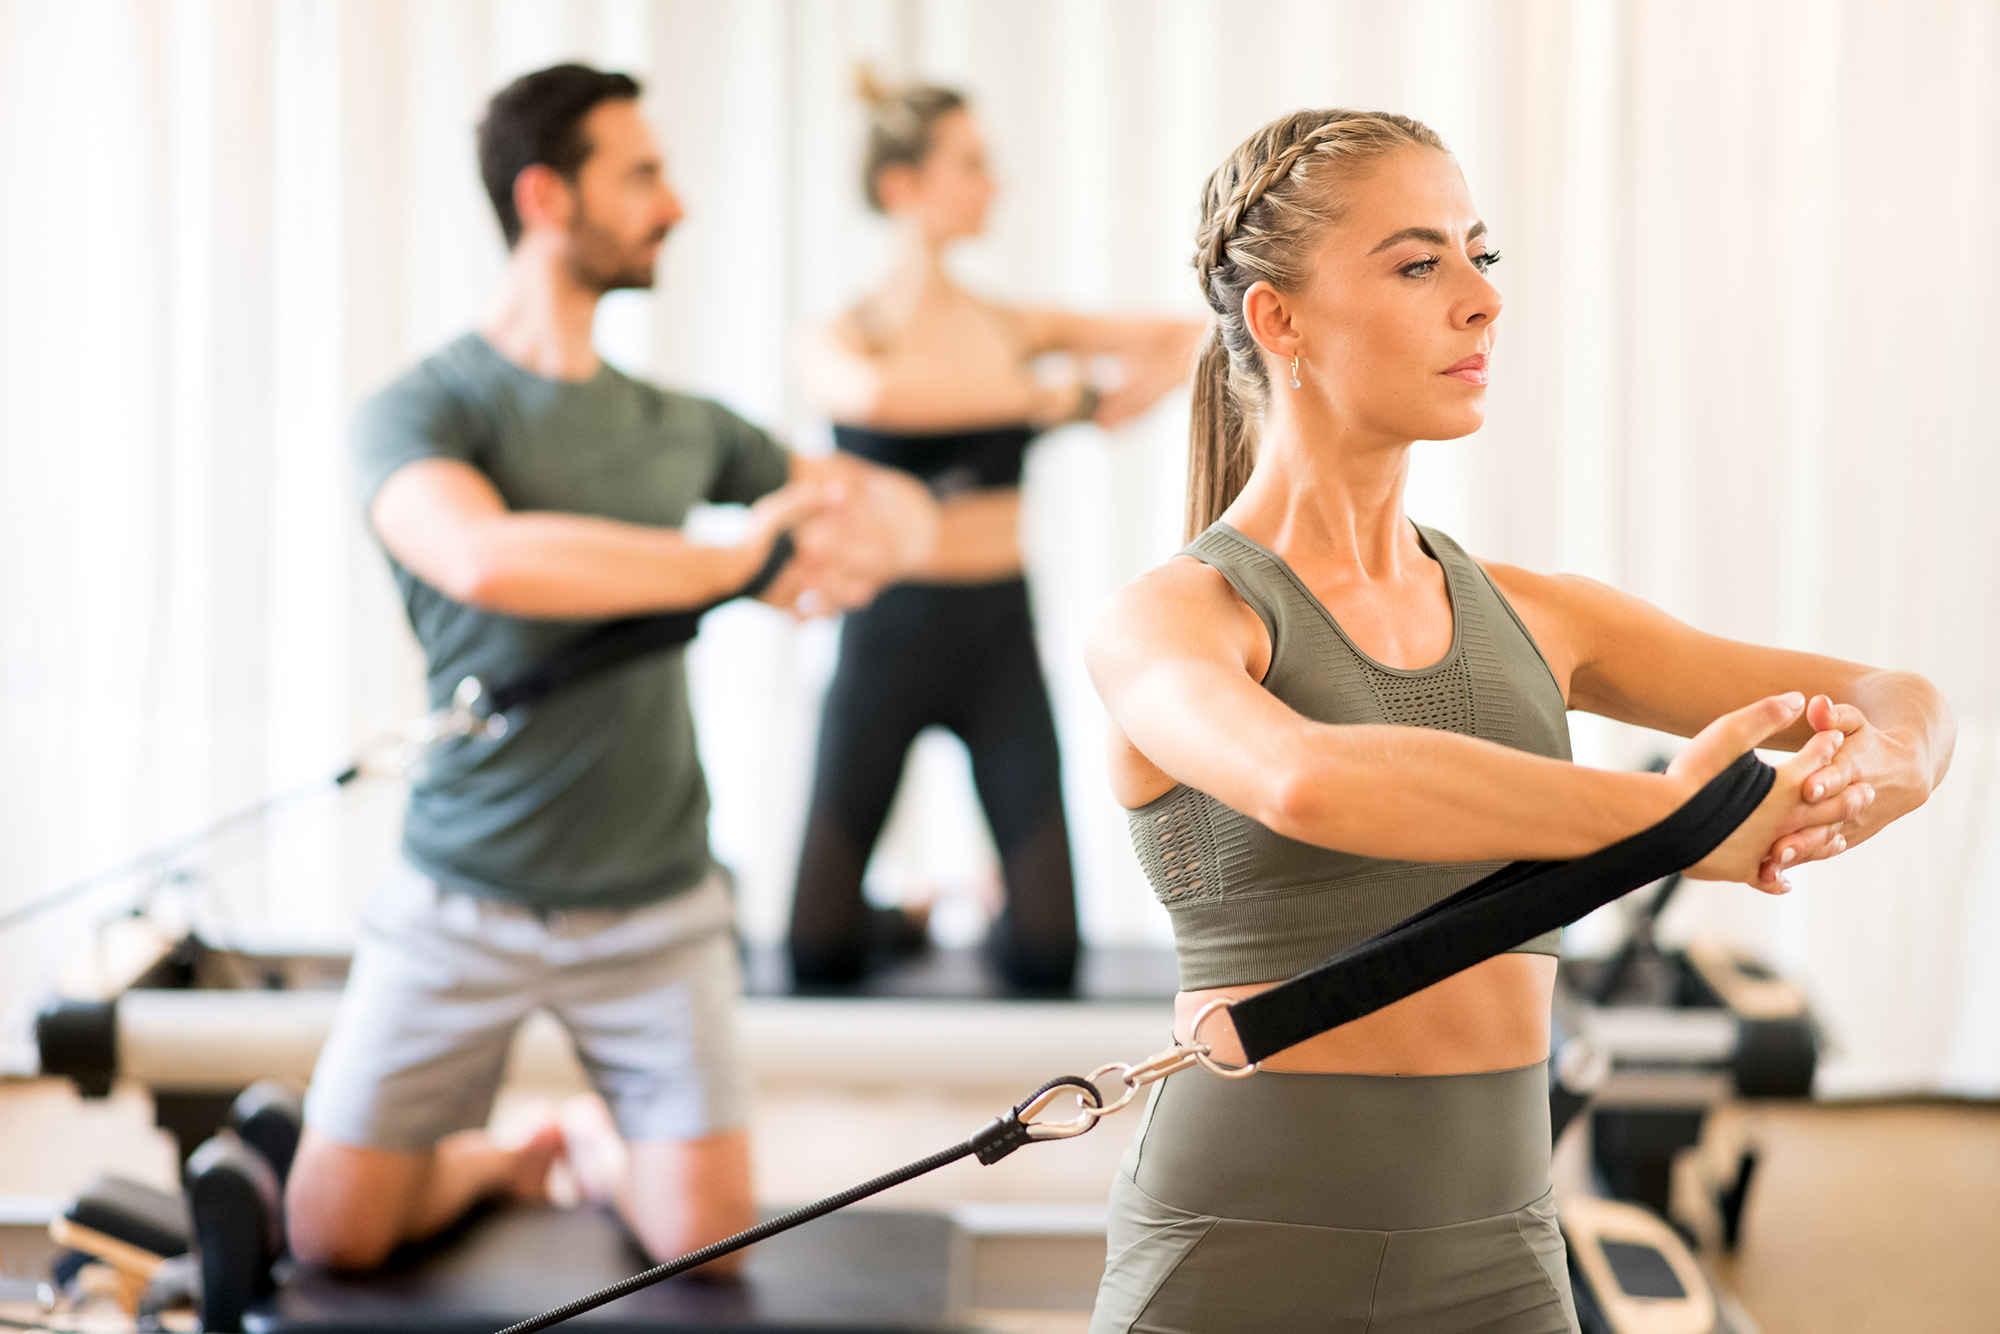 two young pretty blonde women and one brown haired man practicing reformer pilates classes in spine rotation